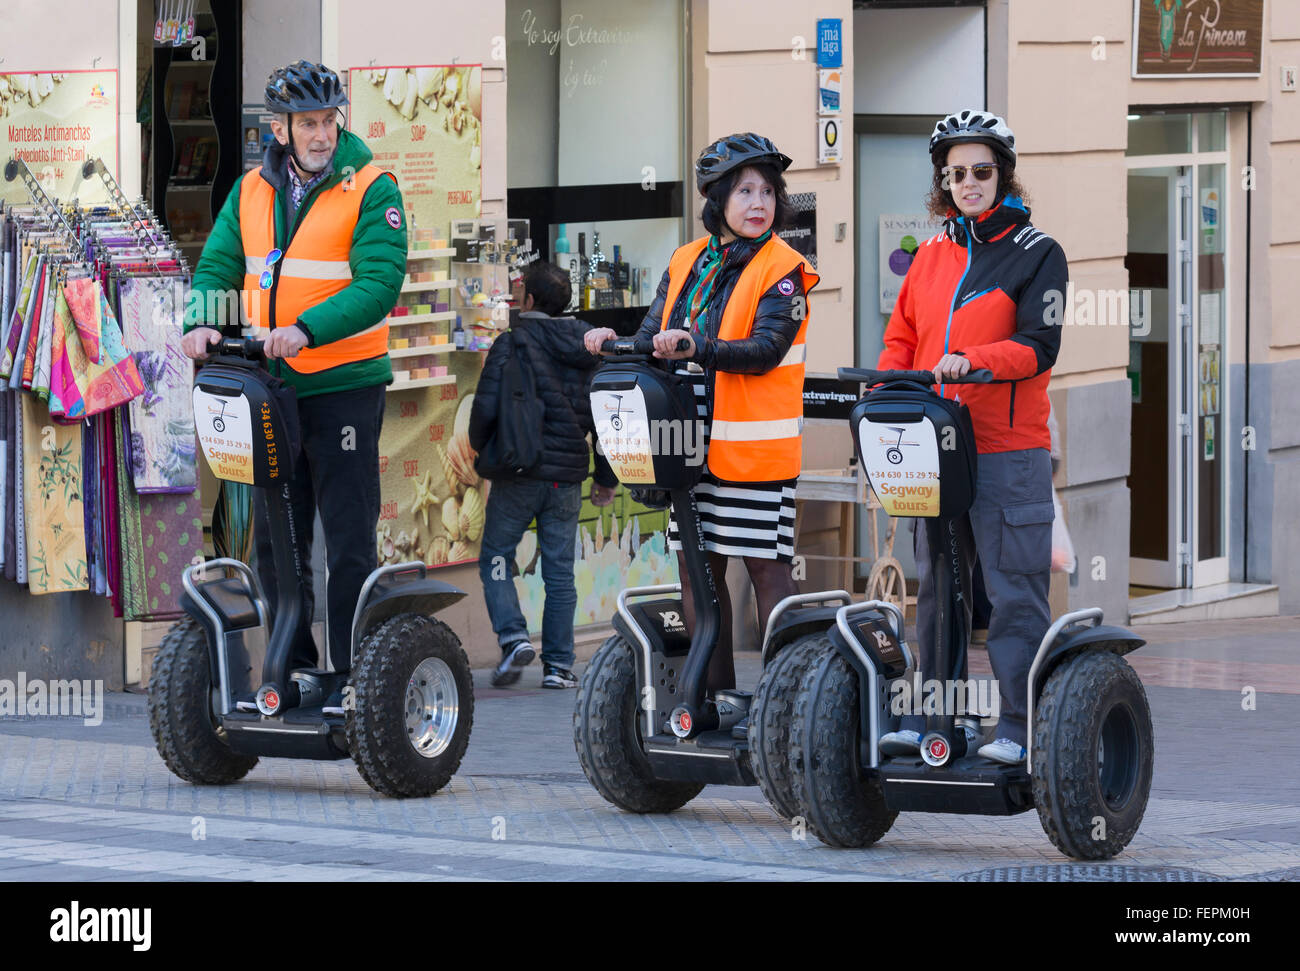 Malaga, Costa del Sol, Malaga Province, Andalusia, southern Spain.  Visitors exploring the city streets using Segways - Stock Image